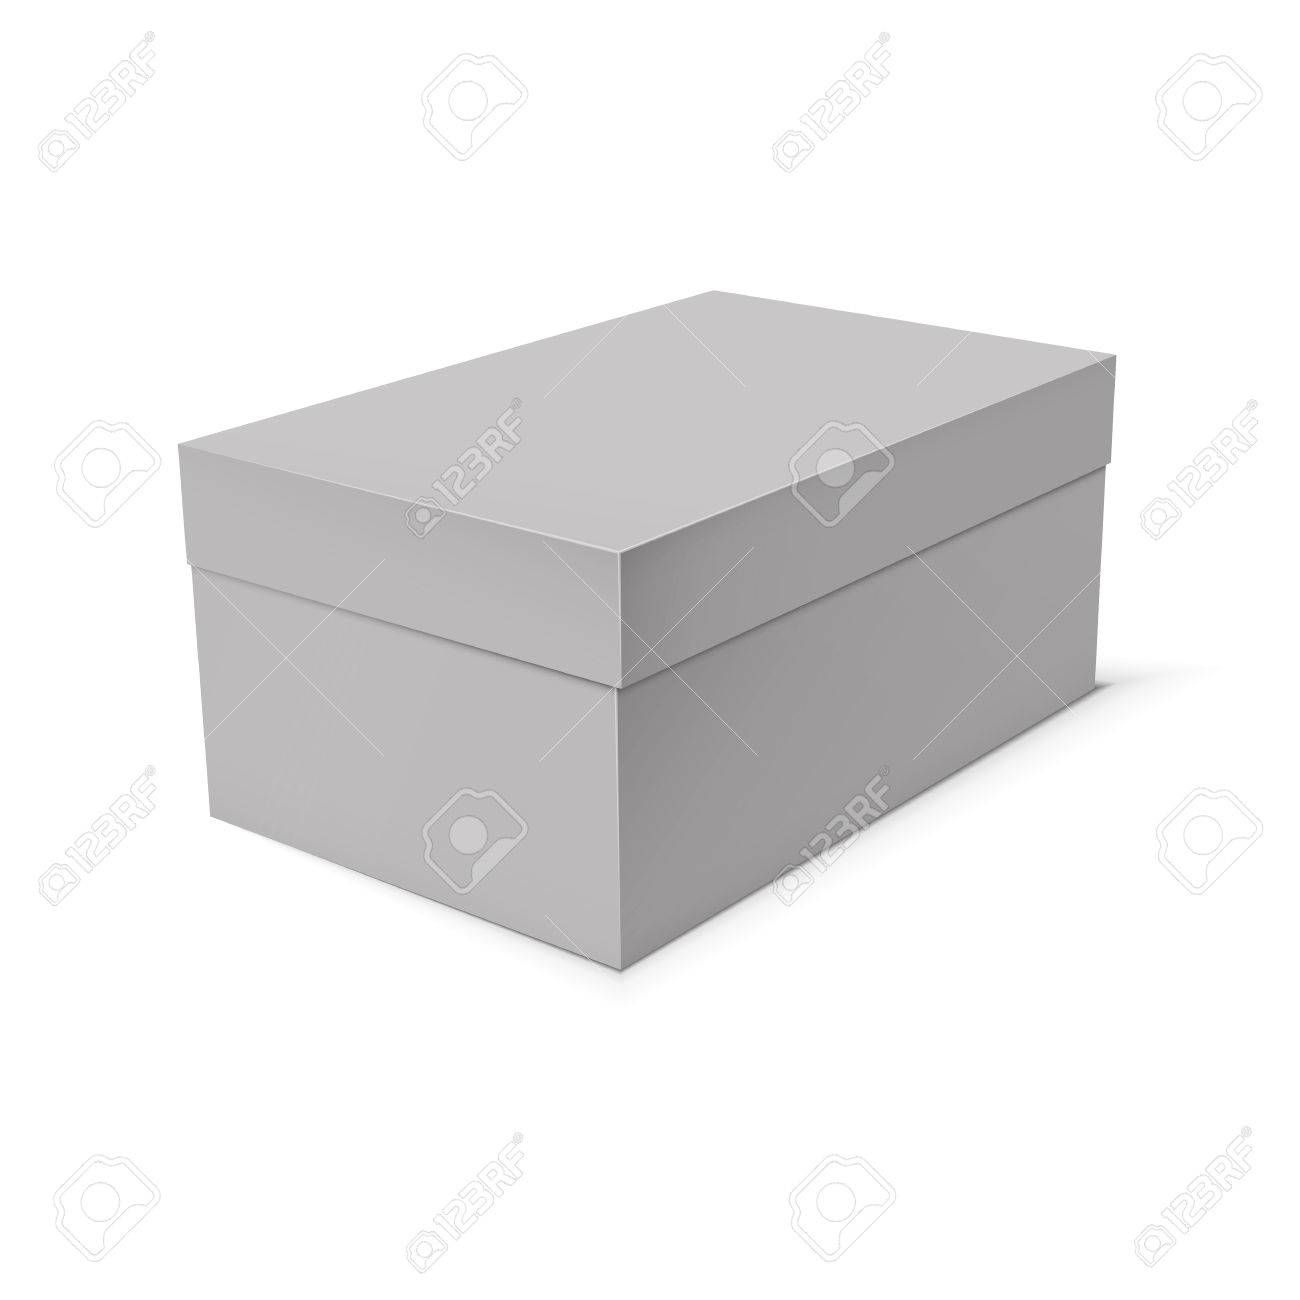 Blank Paper Or Cardboard Box Template On White Background Stock Vector